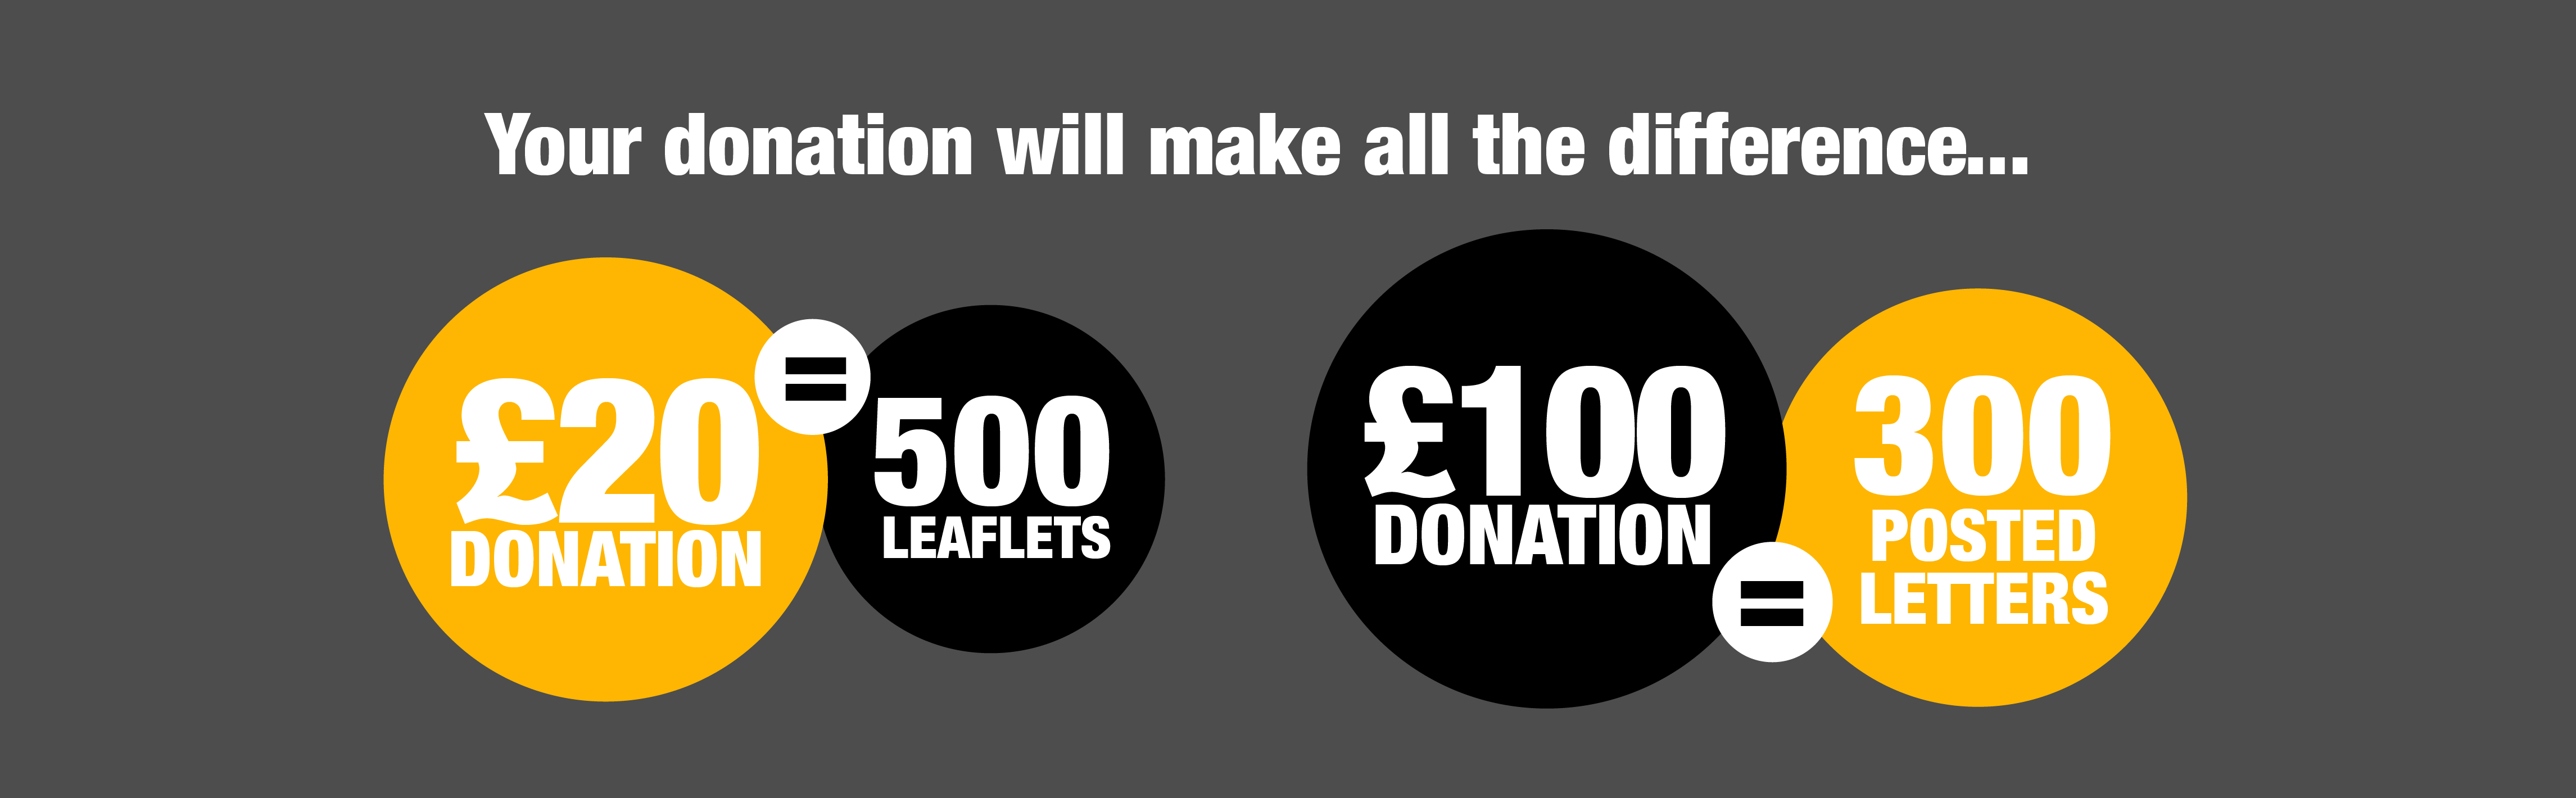 yourdonation-01.png